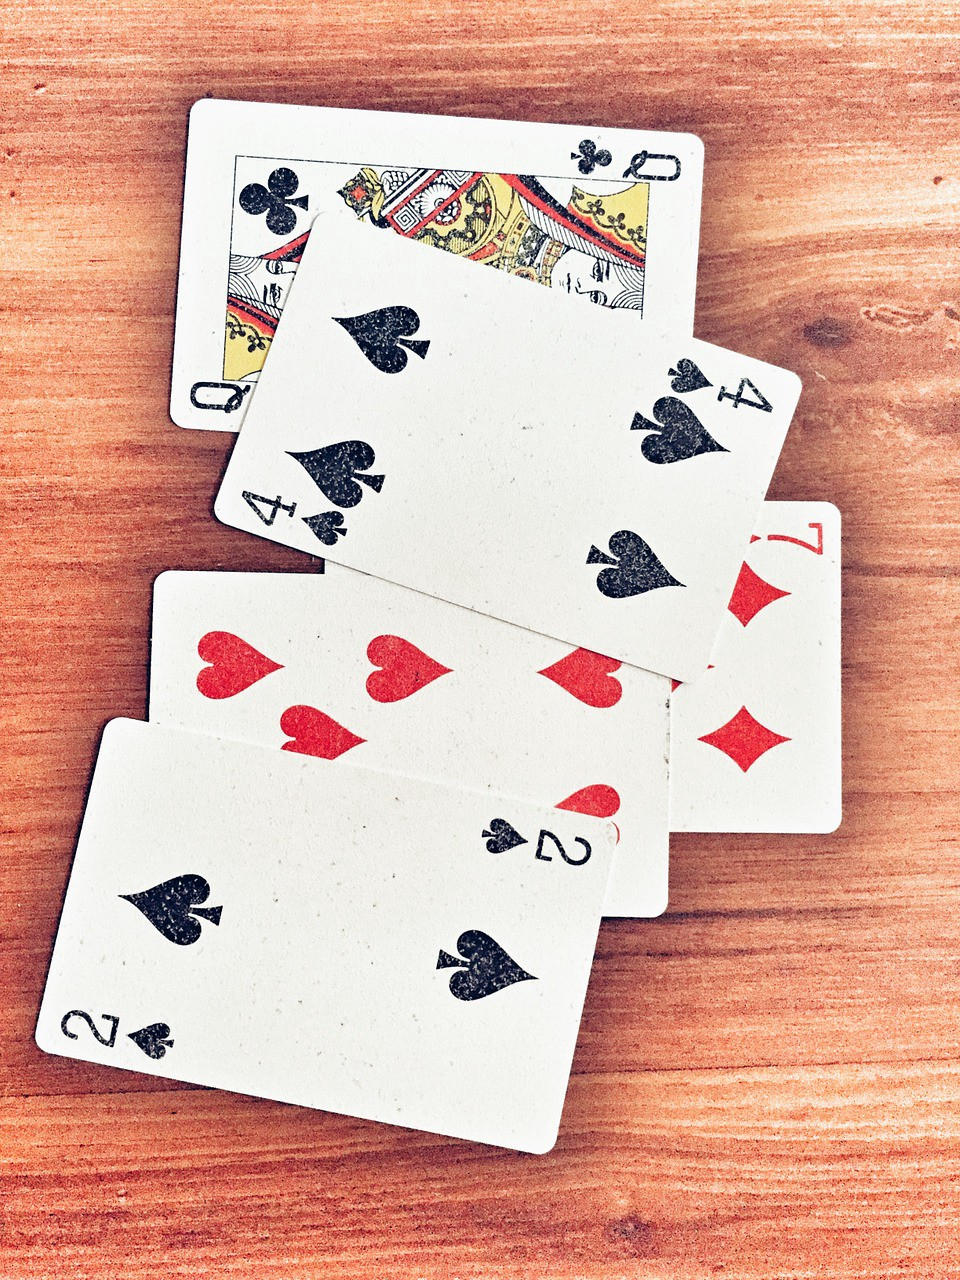 Semi Bluff In Online Poker Game The Semi Fake Is Likely The Most By Pokerlion Medium